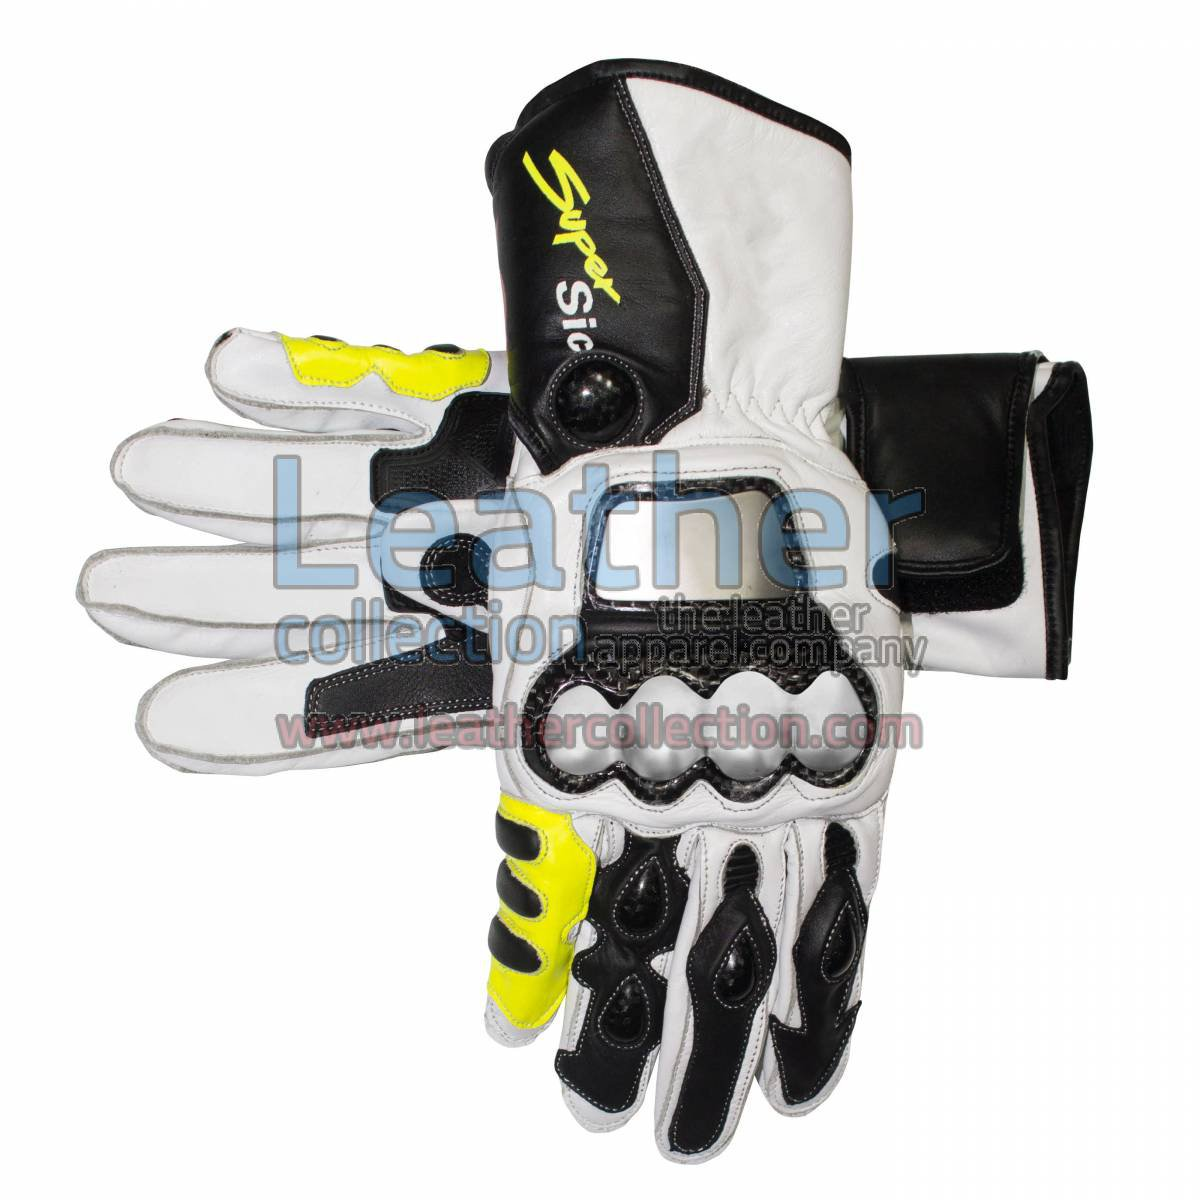 Simoncelli Super Sic Racing Gloves